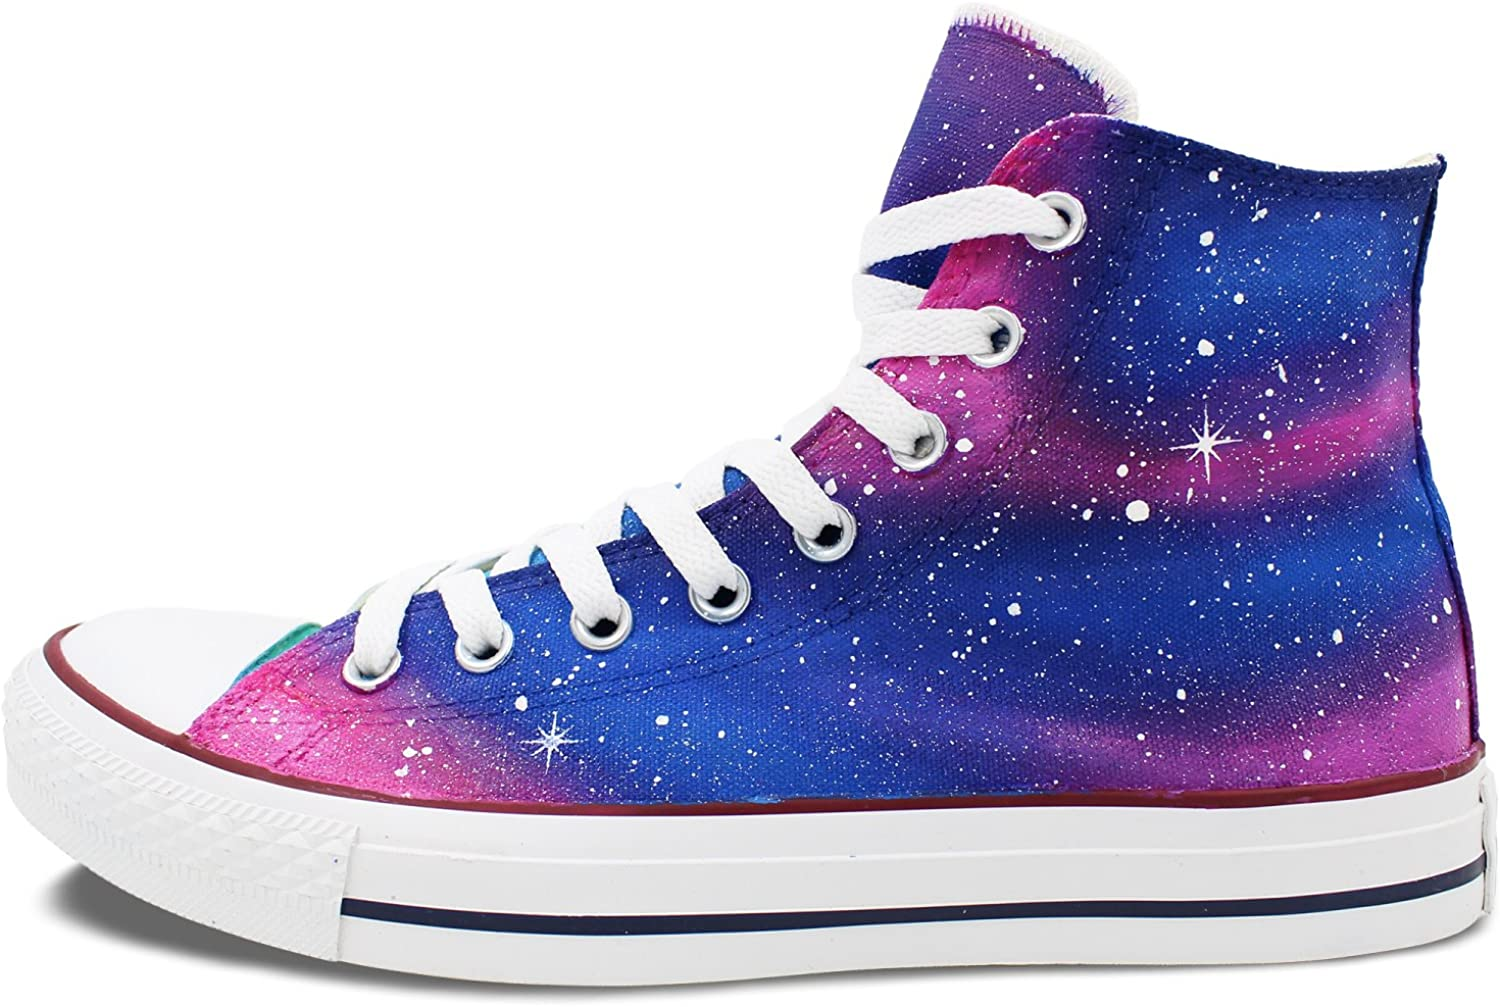 Wen Hand Painted Design Shoes Blue Pink